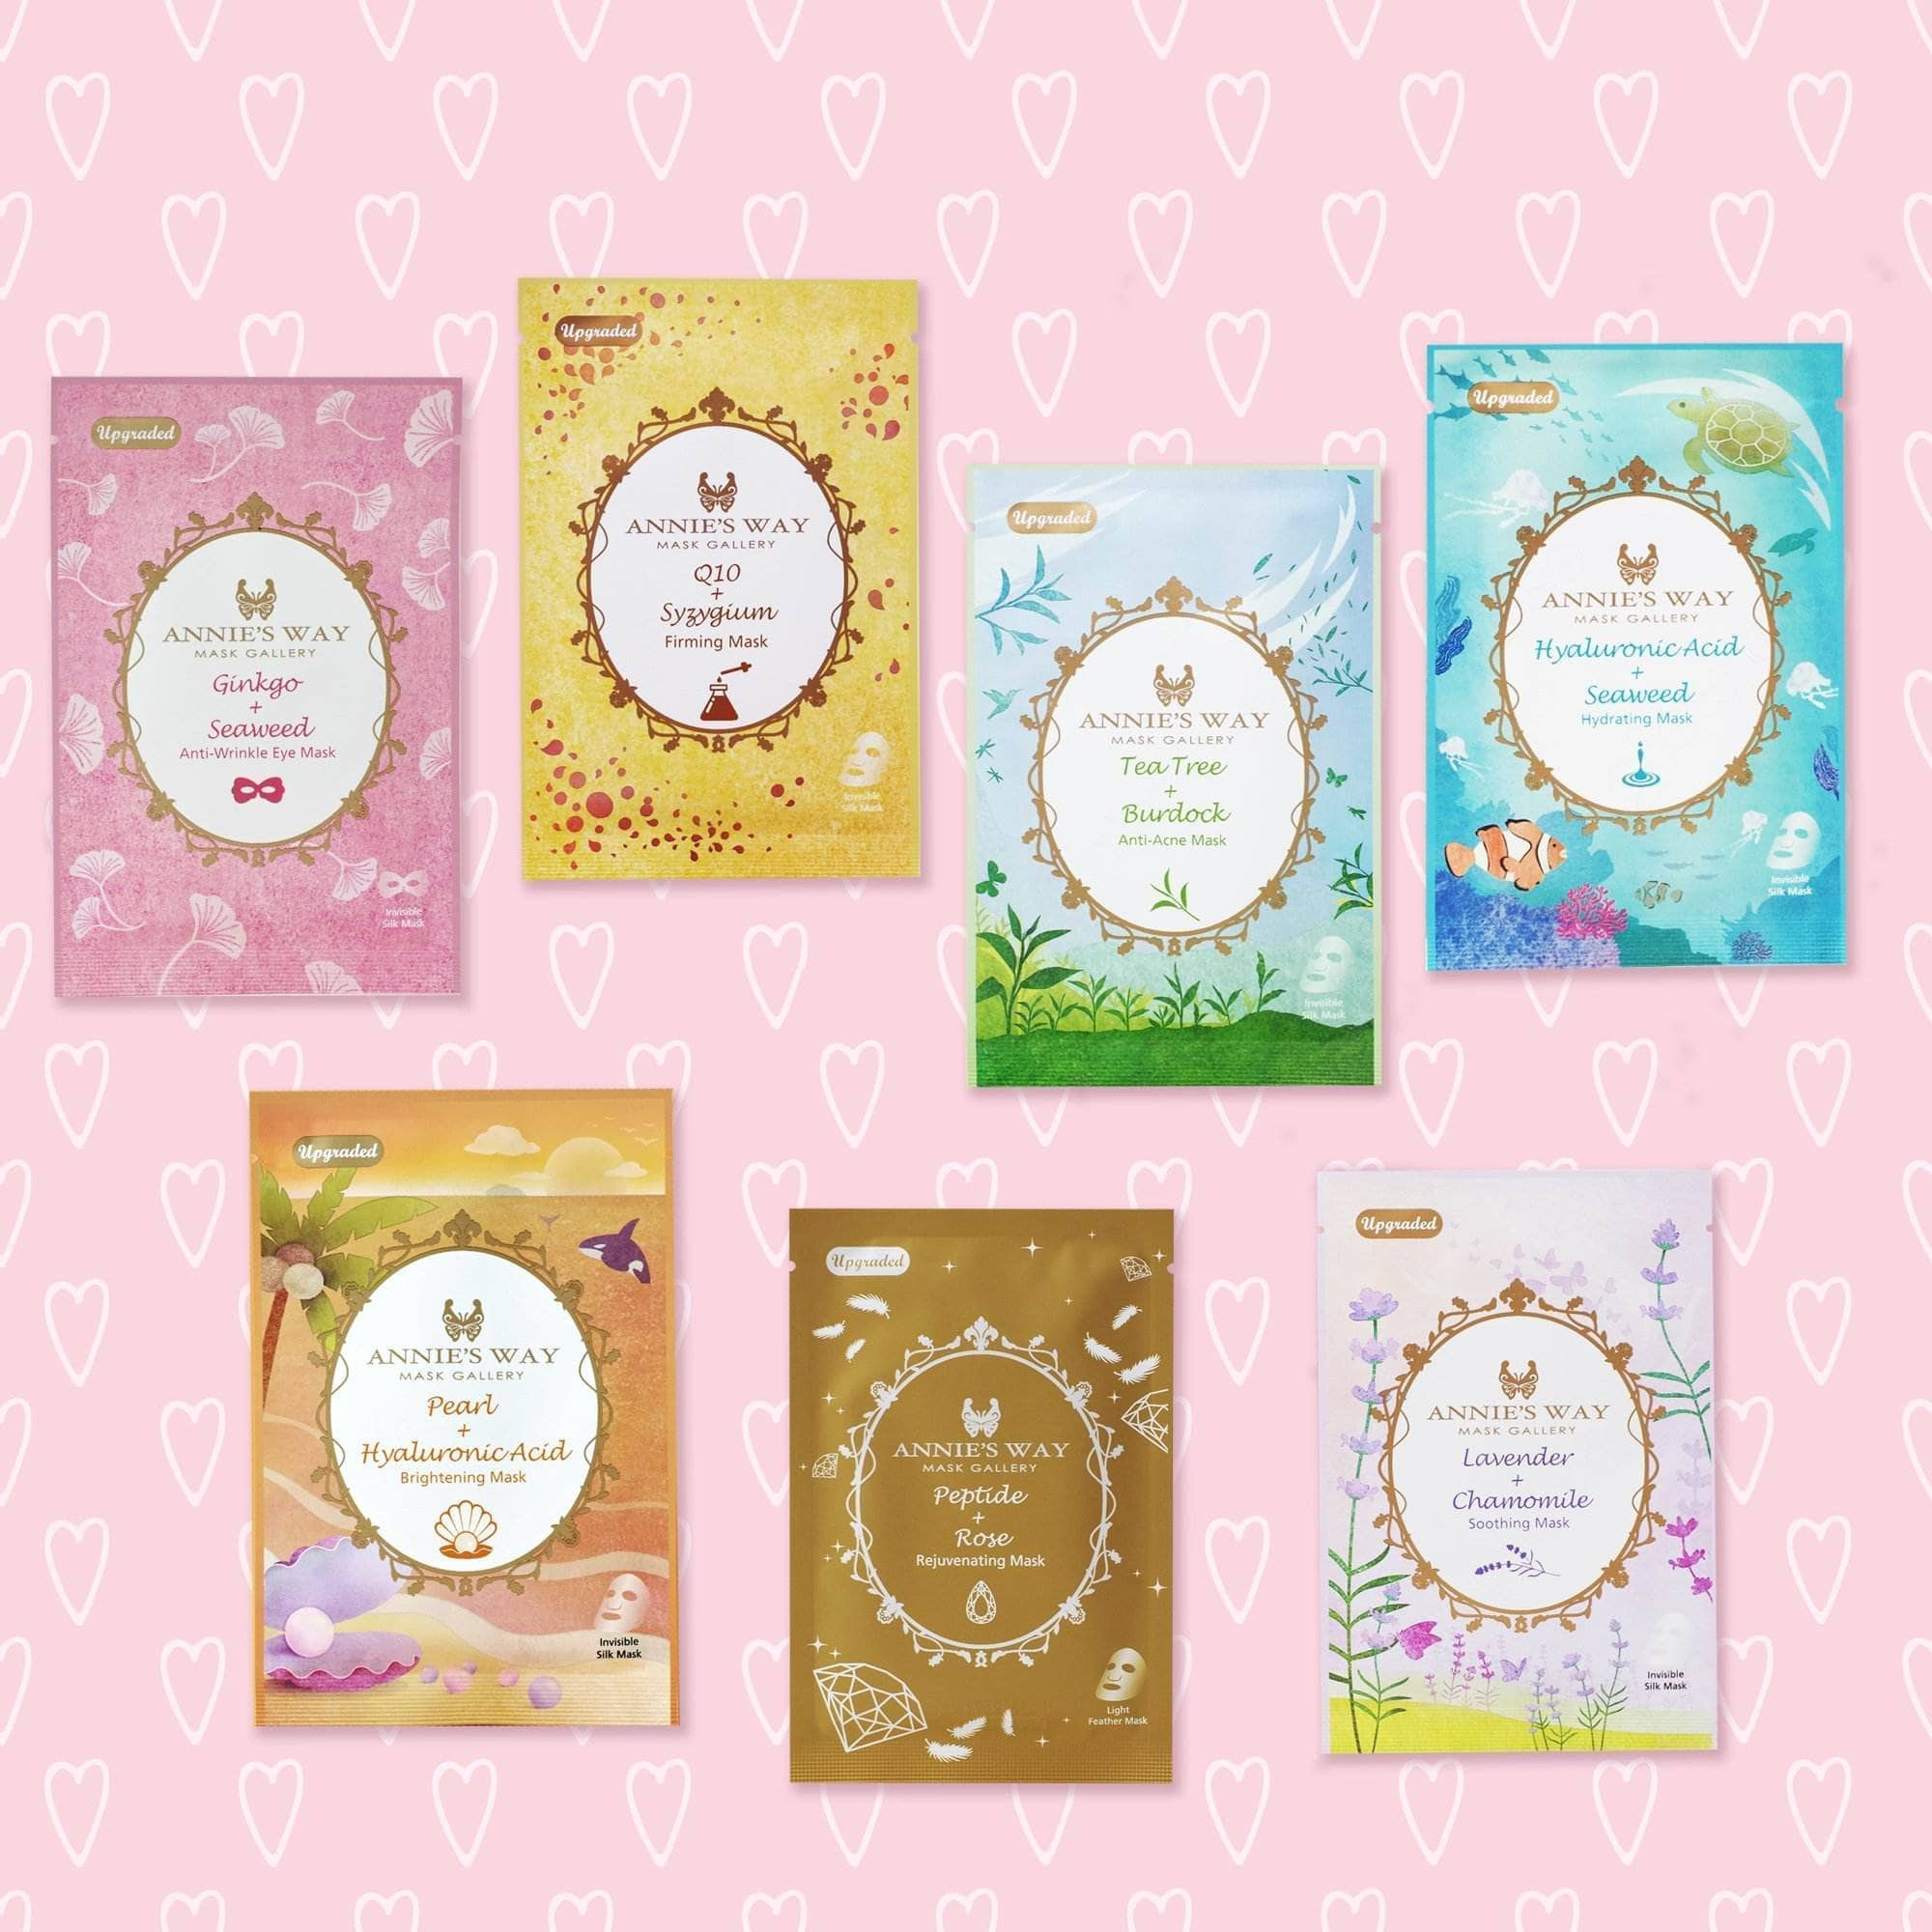 🦋 Annie's Way Fantasy Land Sheet Mask Sampler Set 🦋